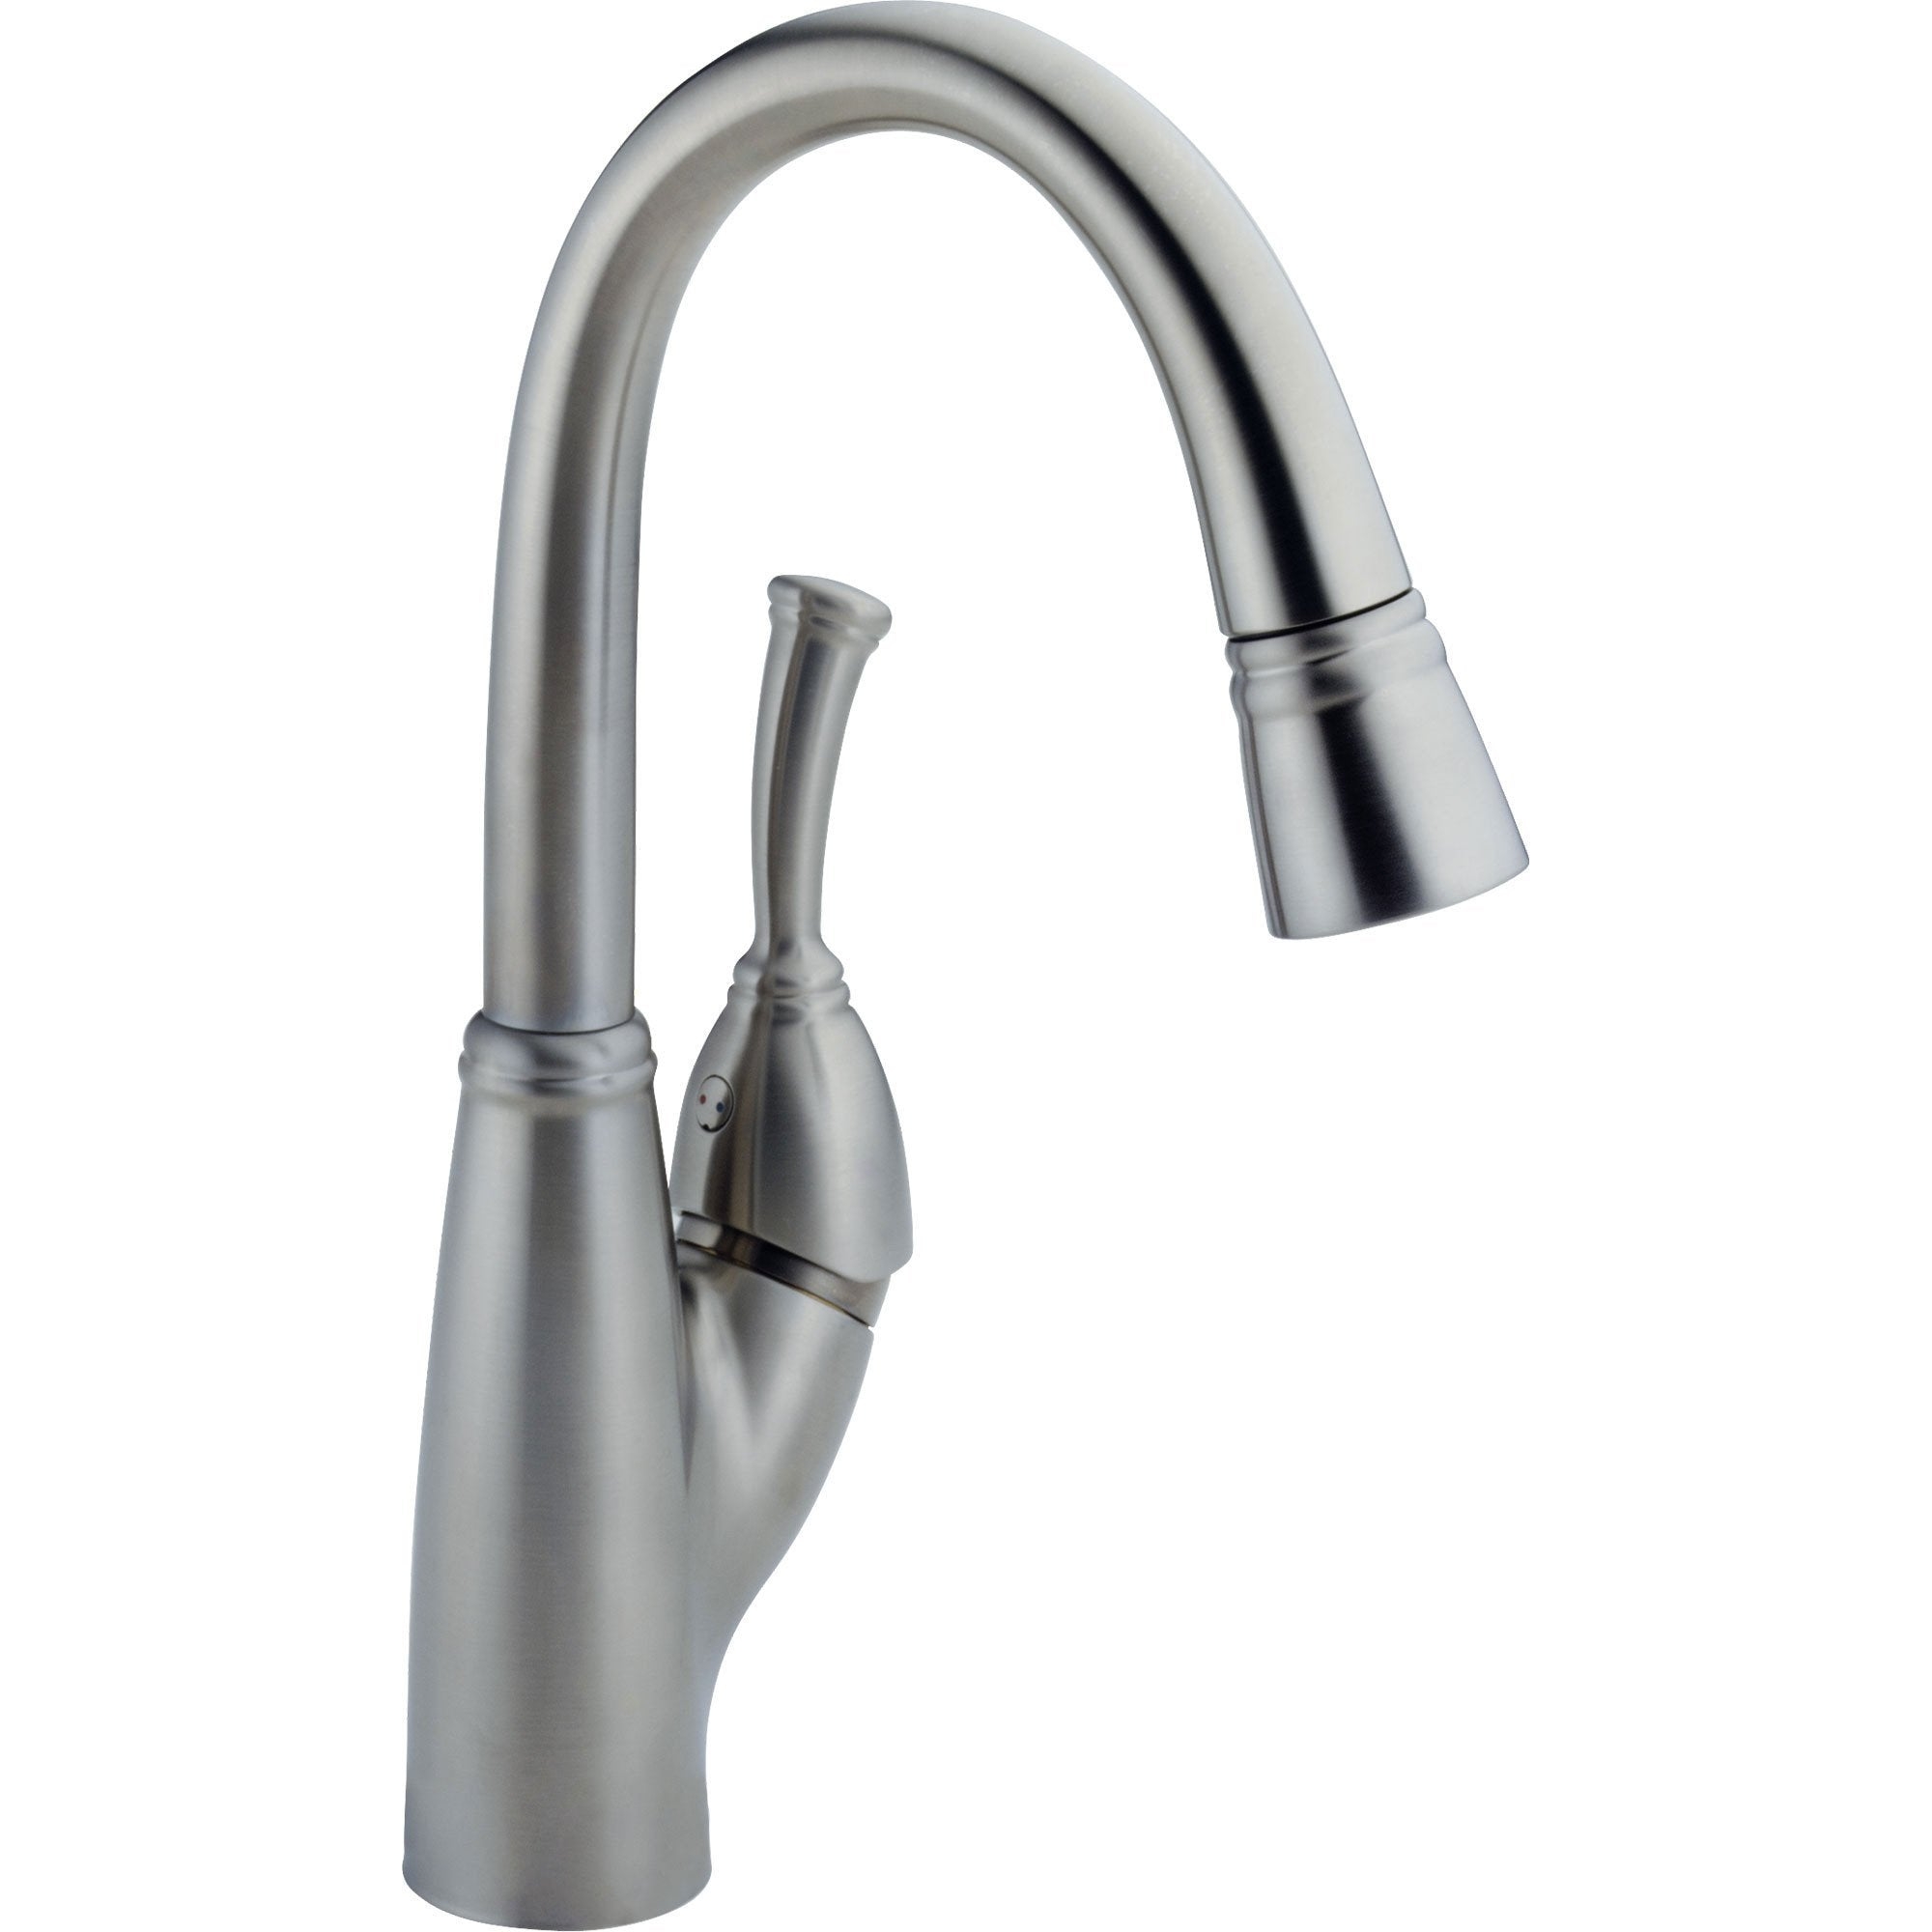 Delta Allora Arctic Stainless Single Handle Pull-Down Sprayer Bar Faucet 573006